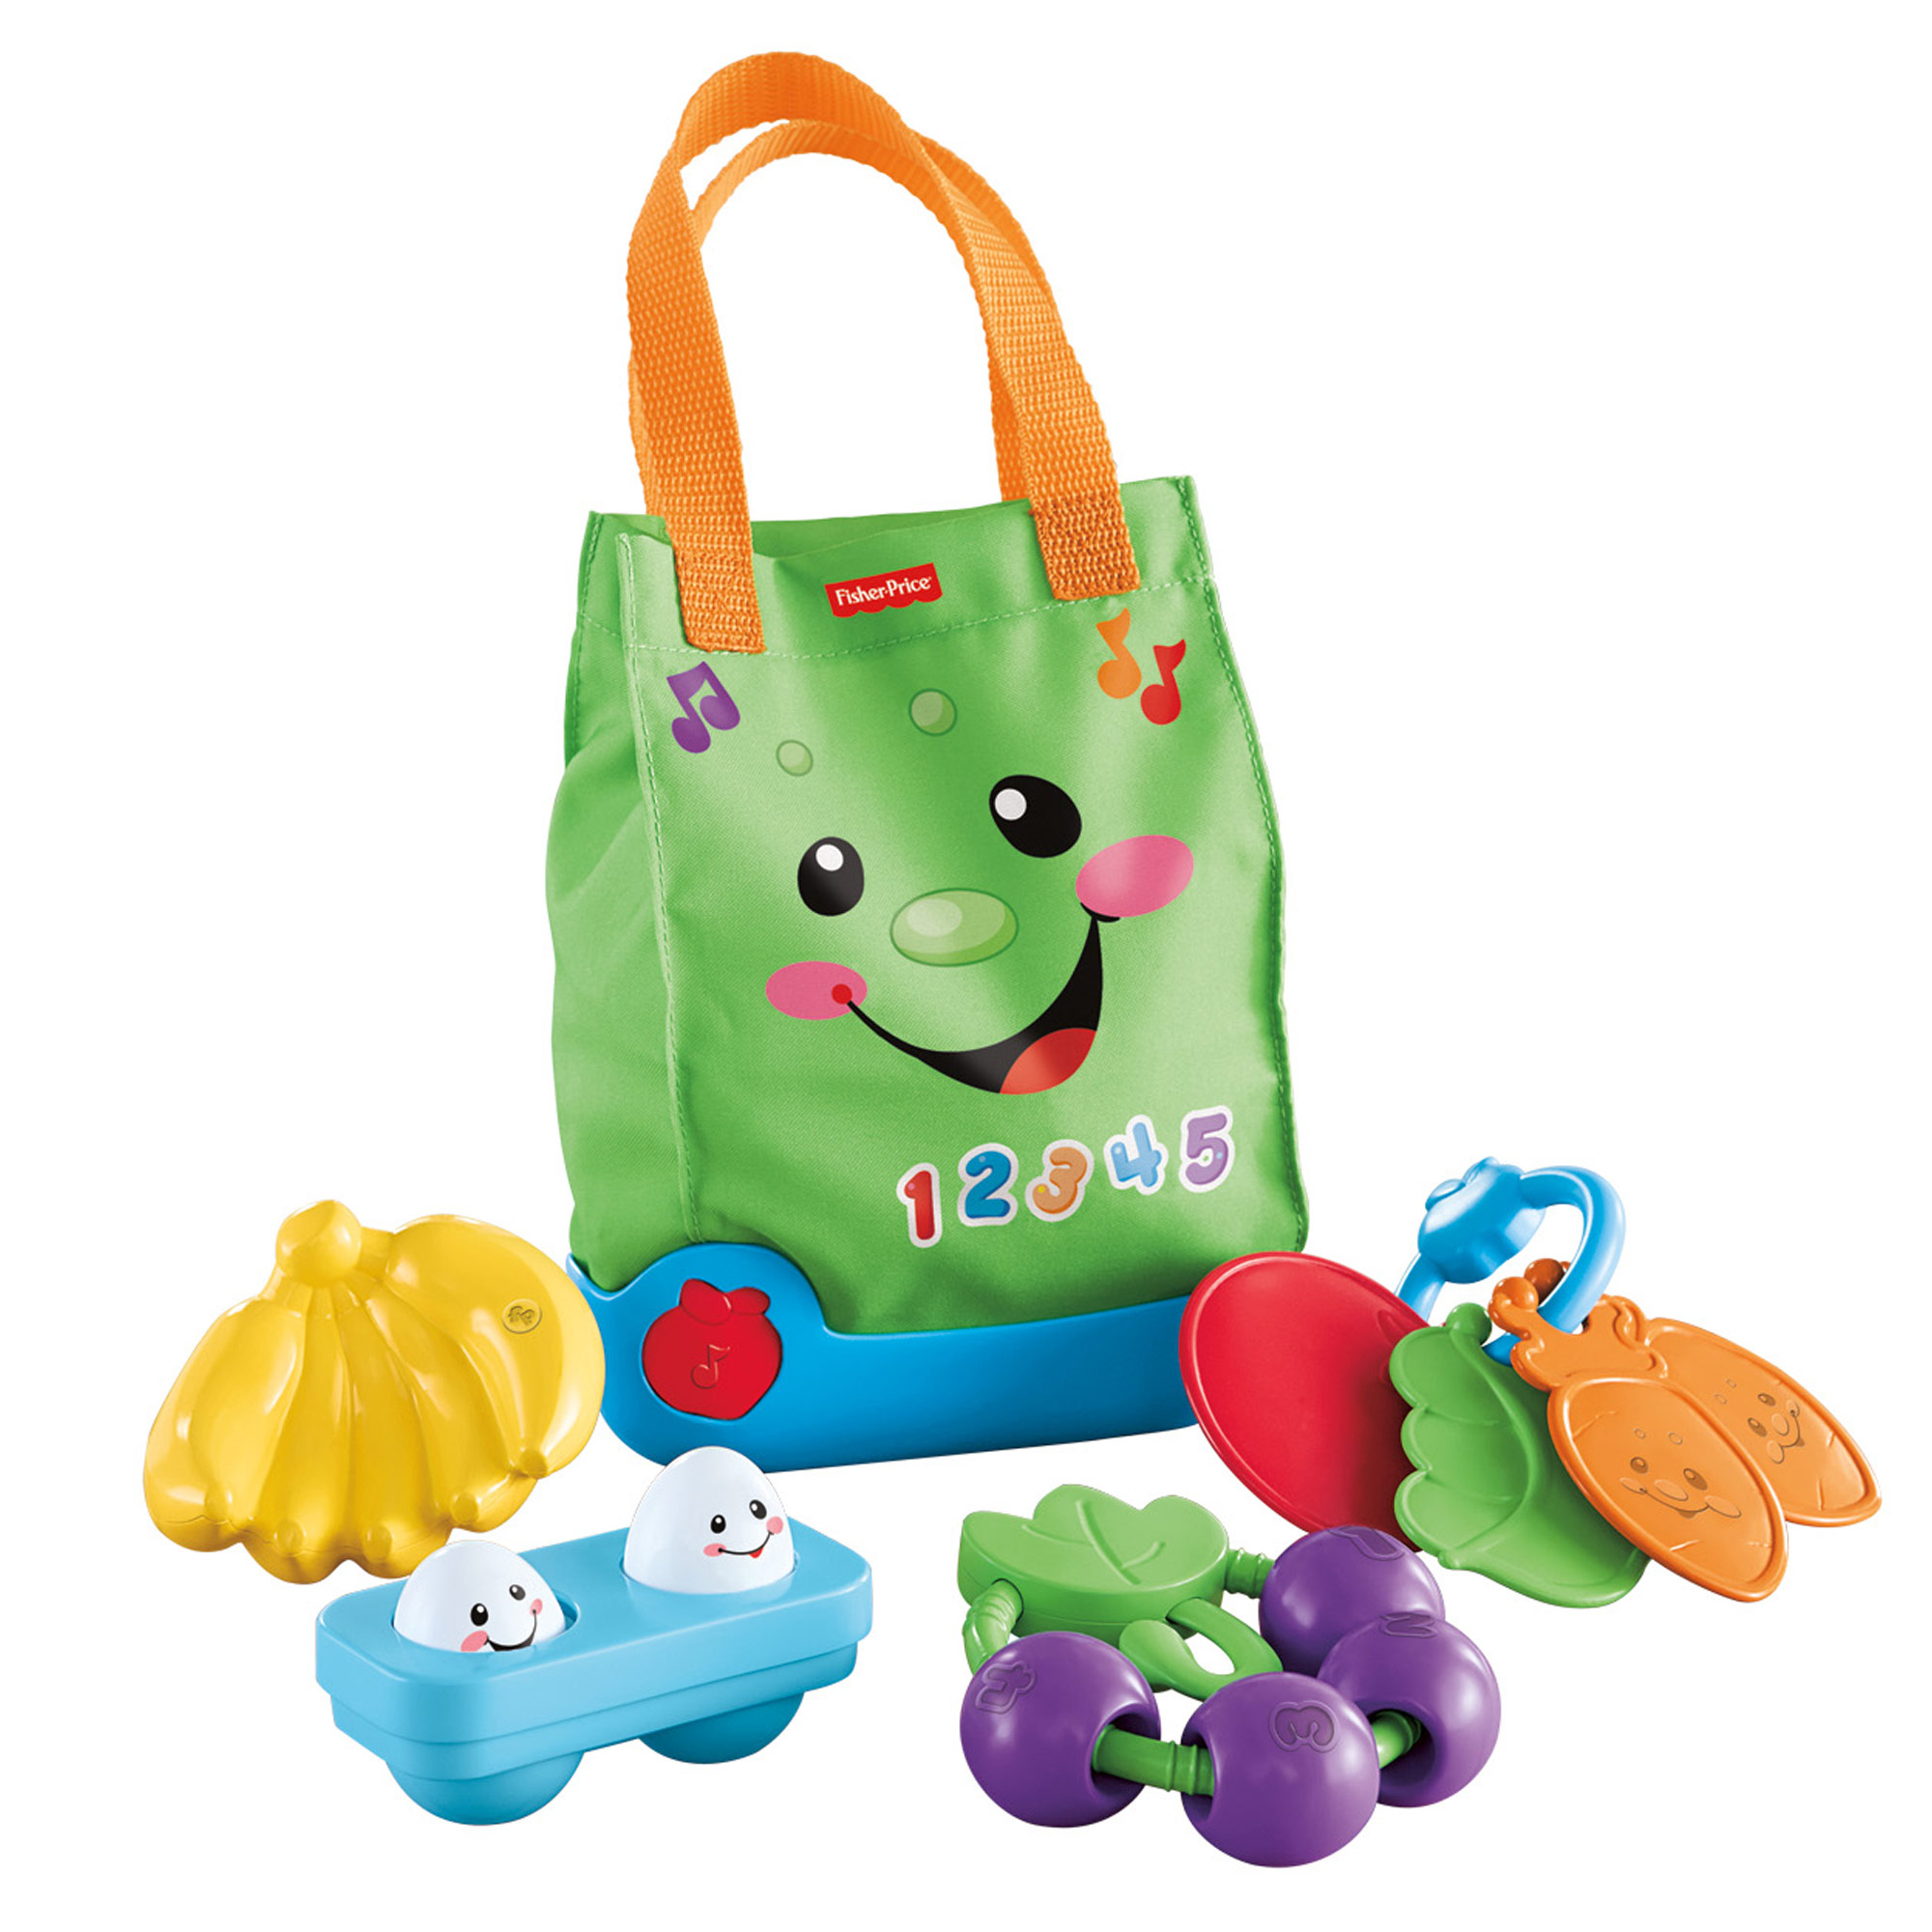 Picture of Fisher Price Laugh & Learn Sing 'n Learn Shopping bag